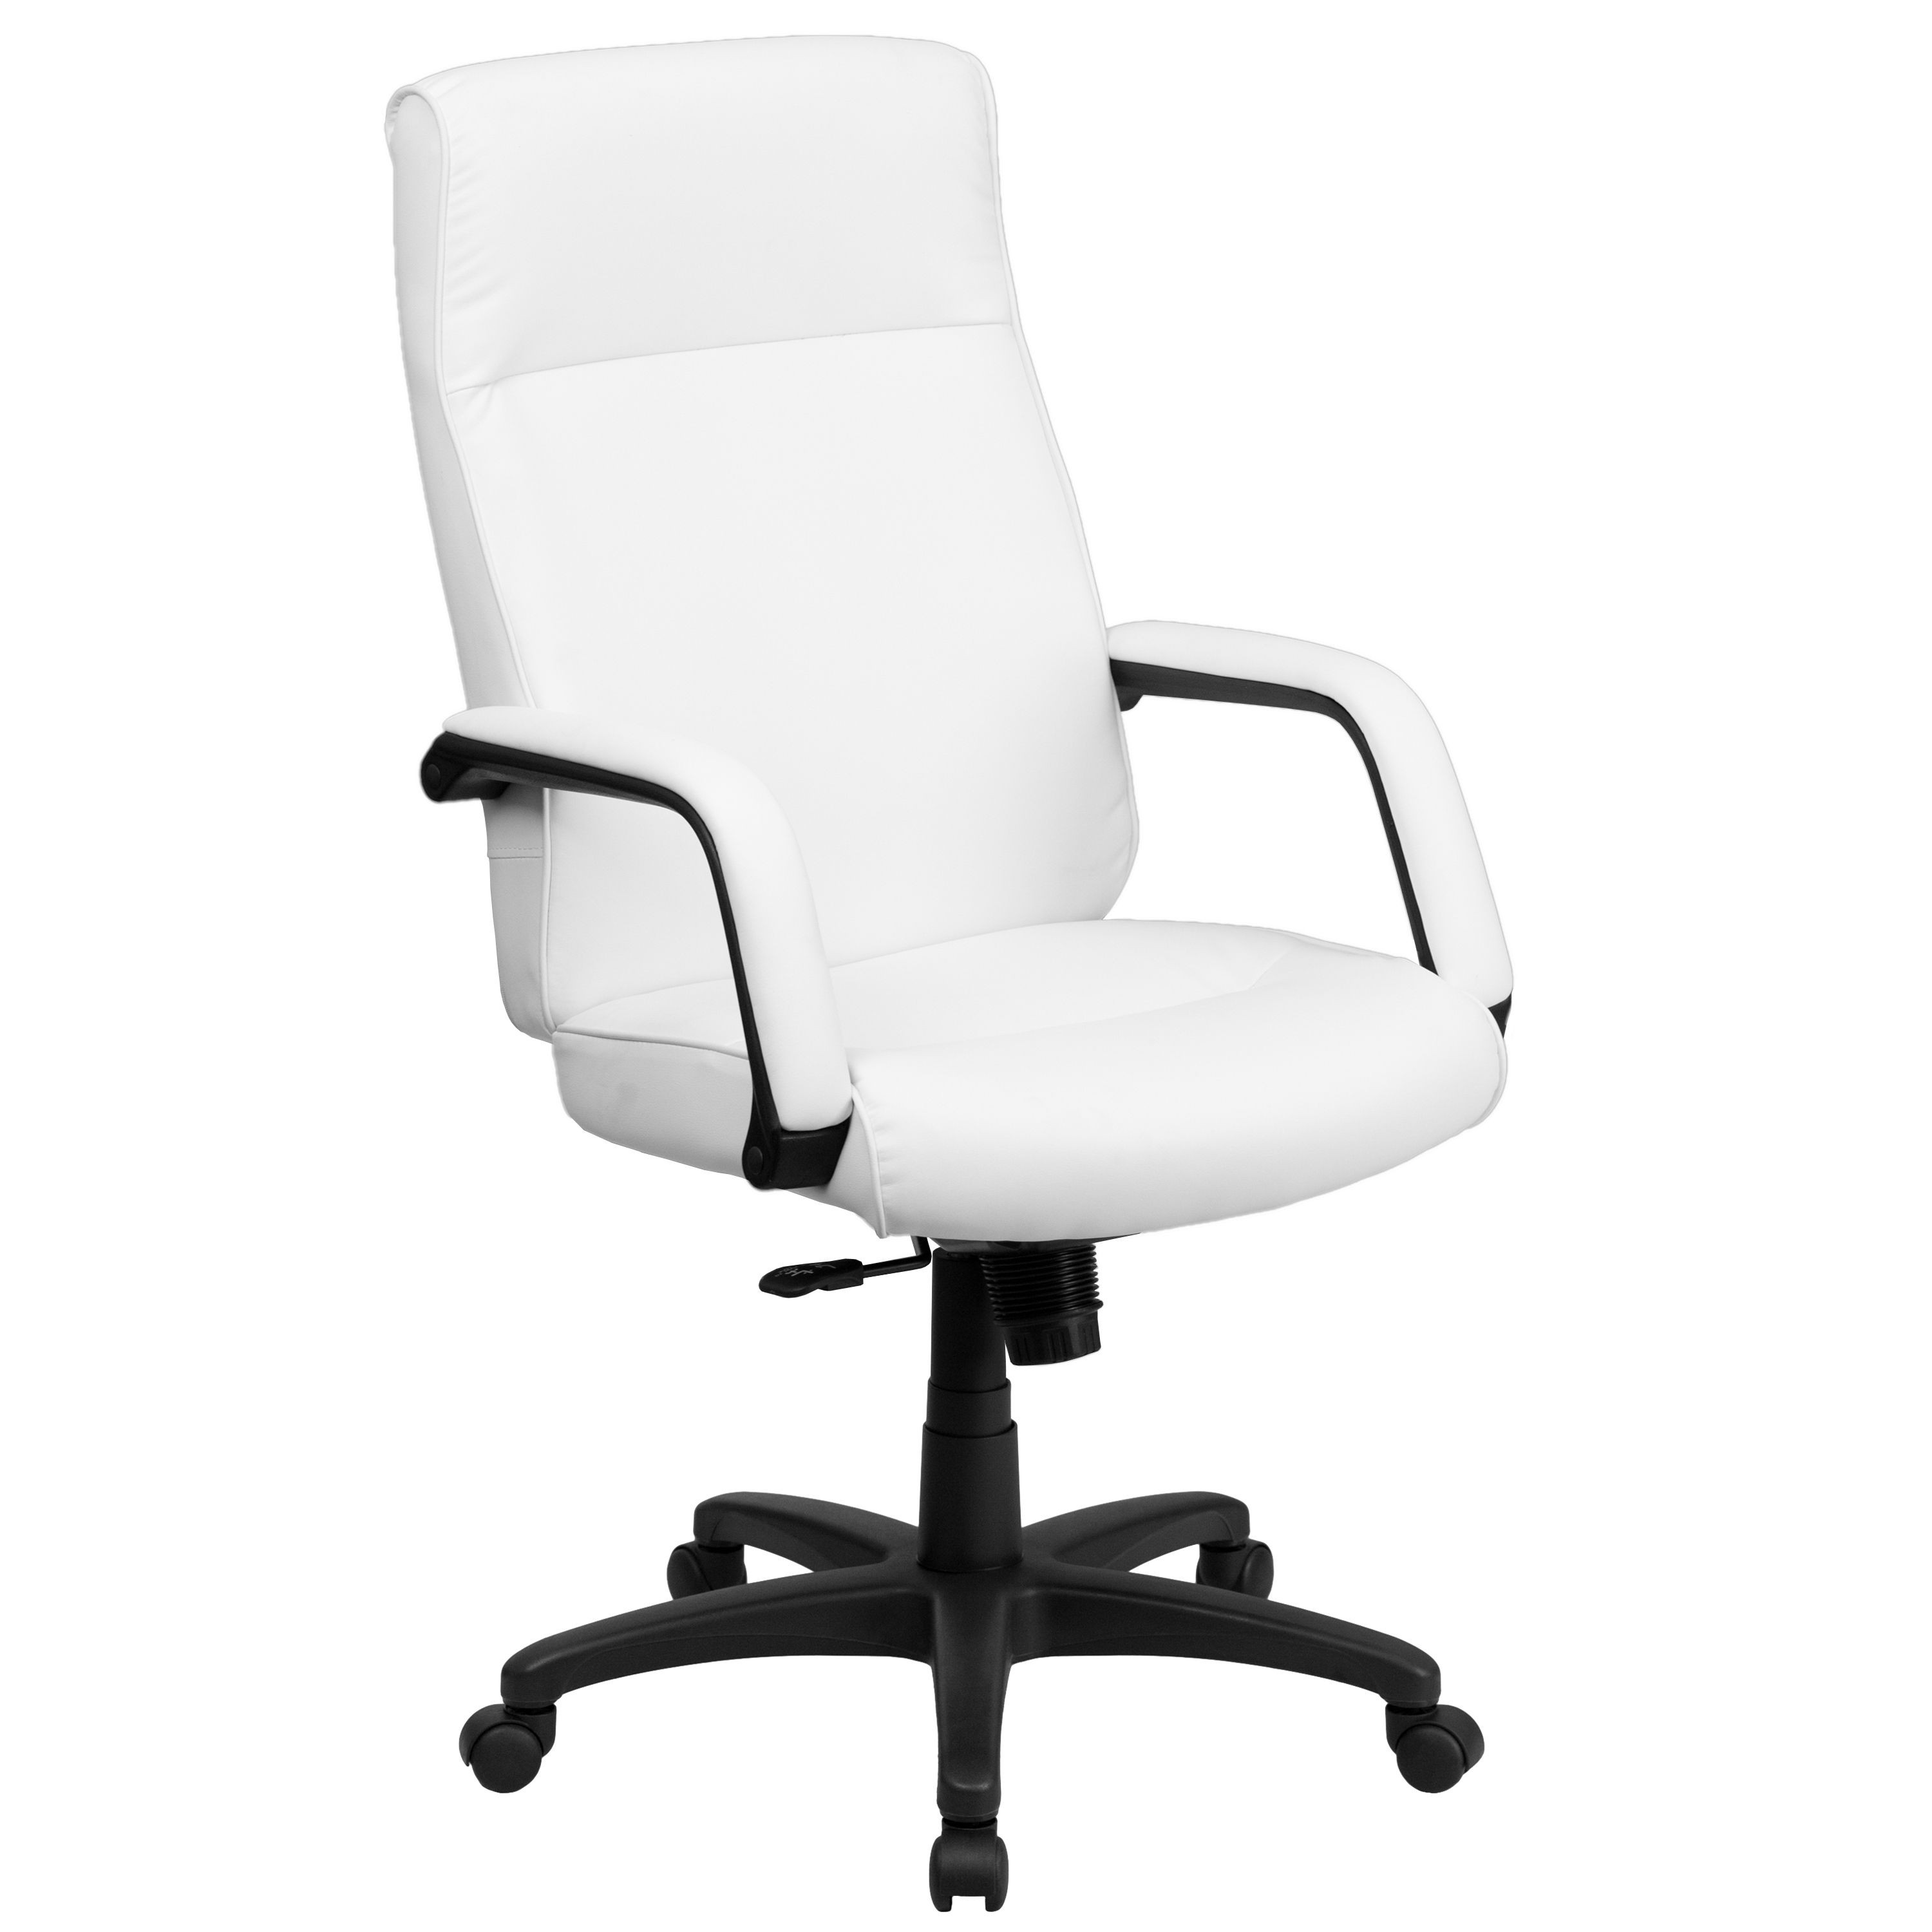 Flash Furniture BT-90033H-WH-GG High Back White Leather Executive Office Chair with Memory Foam Padding